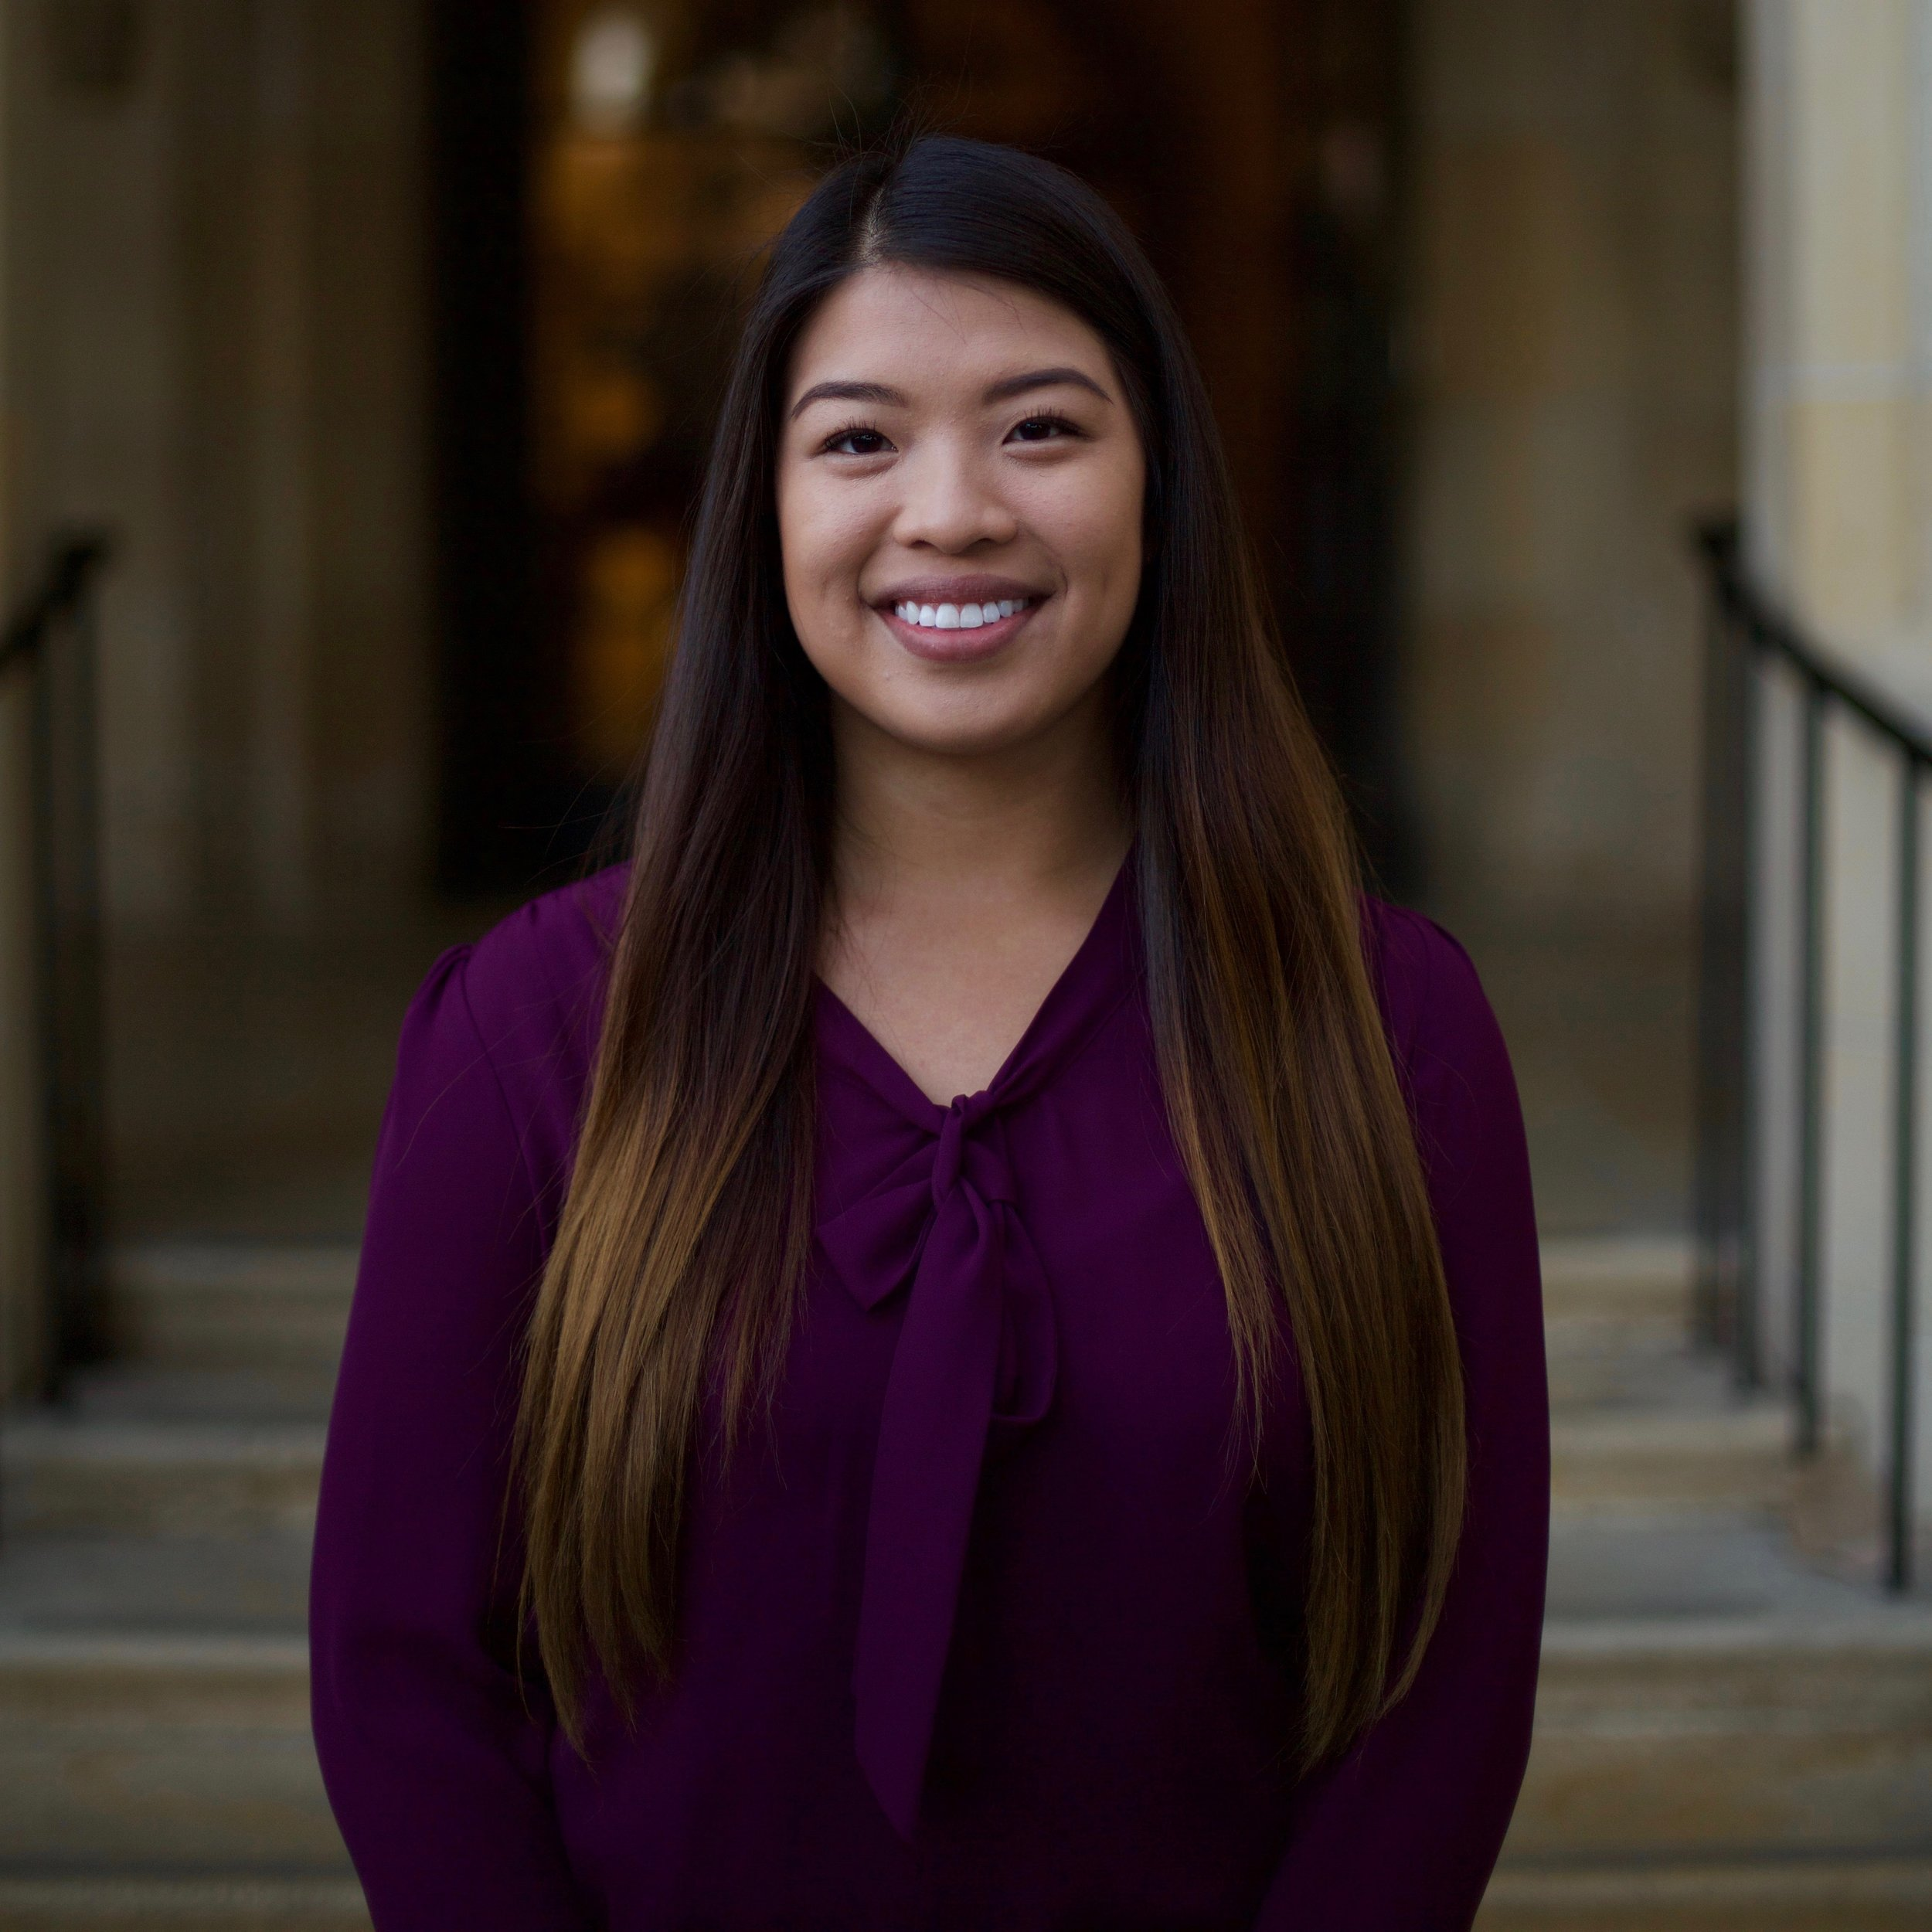 Caroline Fung is the Project Coordinator for CSS and is a recent graduate from UCLA with a degree in Psychology.